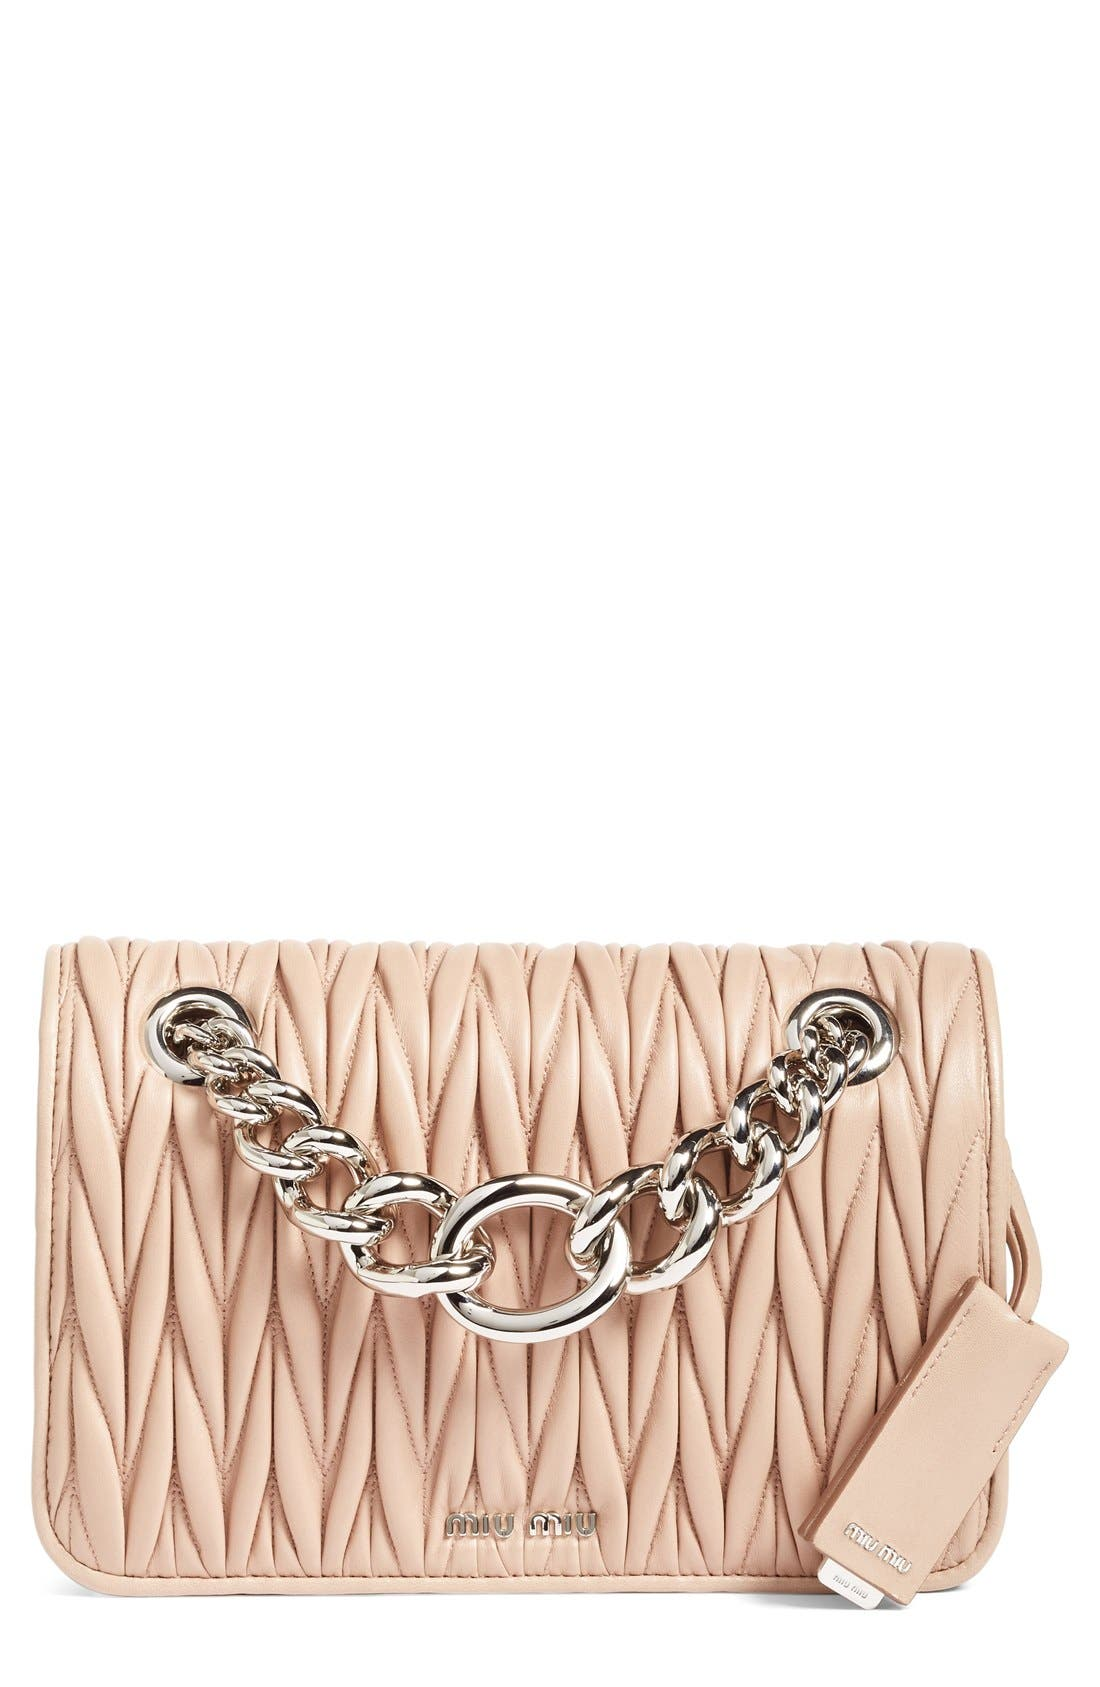 Miu Miu Club Matelassé Leather Shoulder Bag